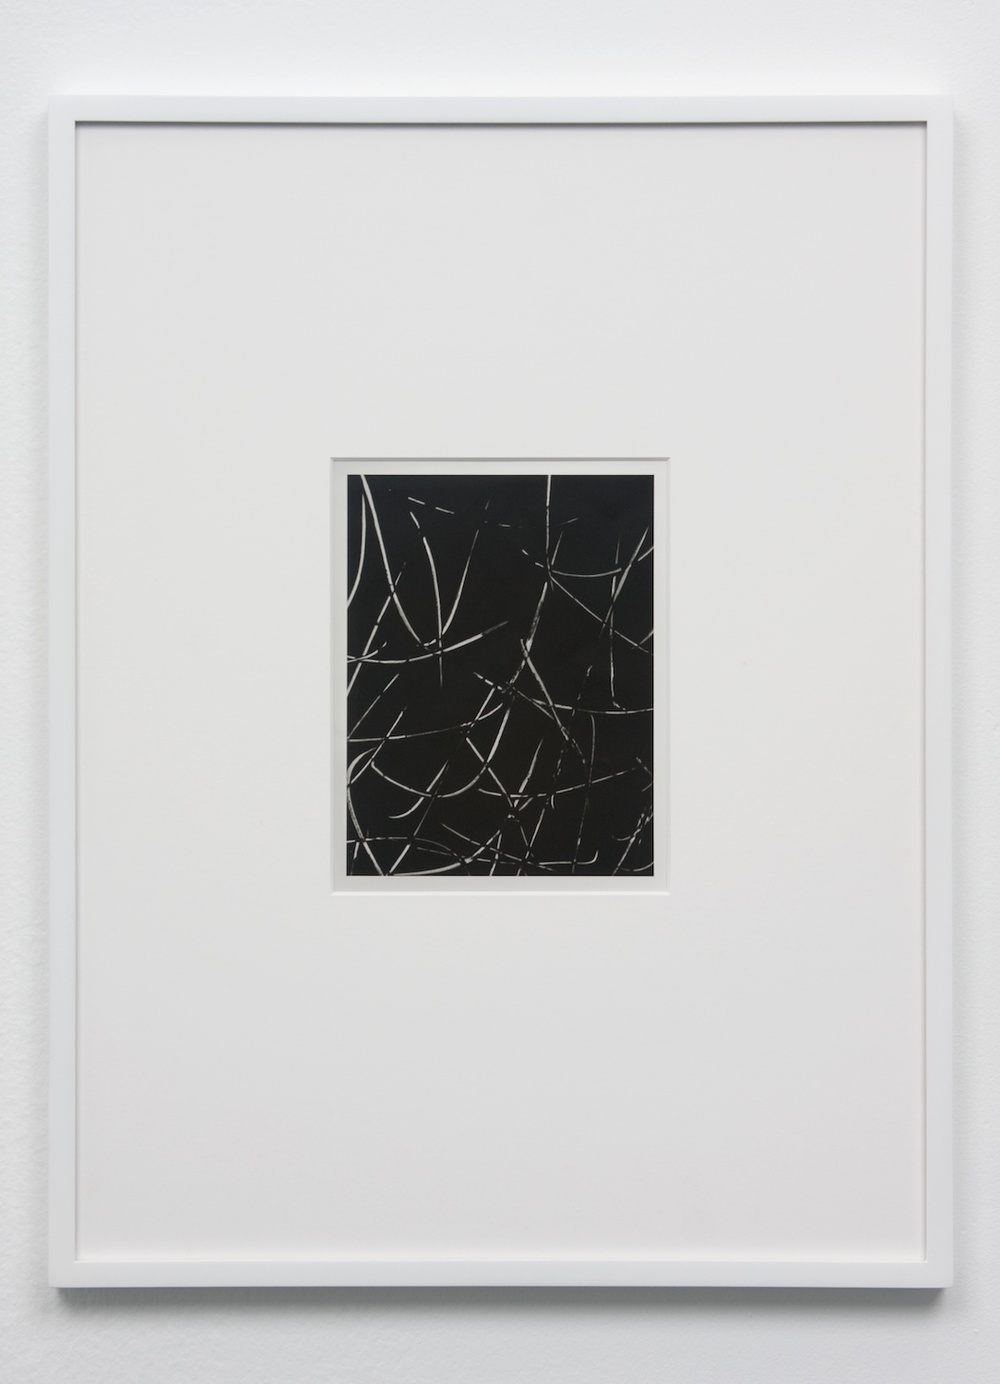 "Anthony Pearson Untitled (Solarization) 2010 Framed solarized silver gelatin photograph 17 1/2"" x 13 1/4"" AP241"